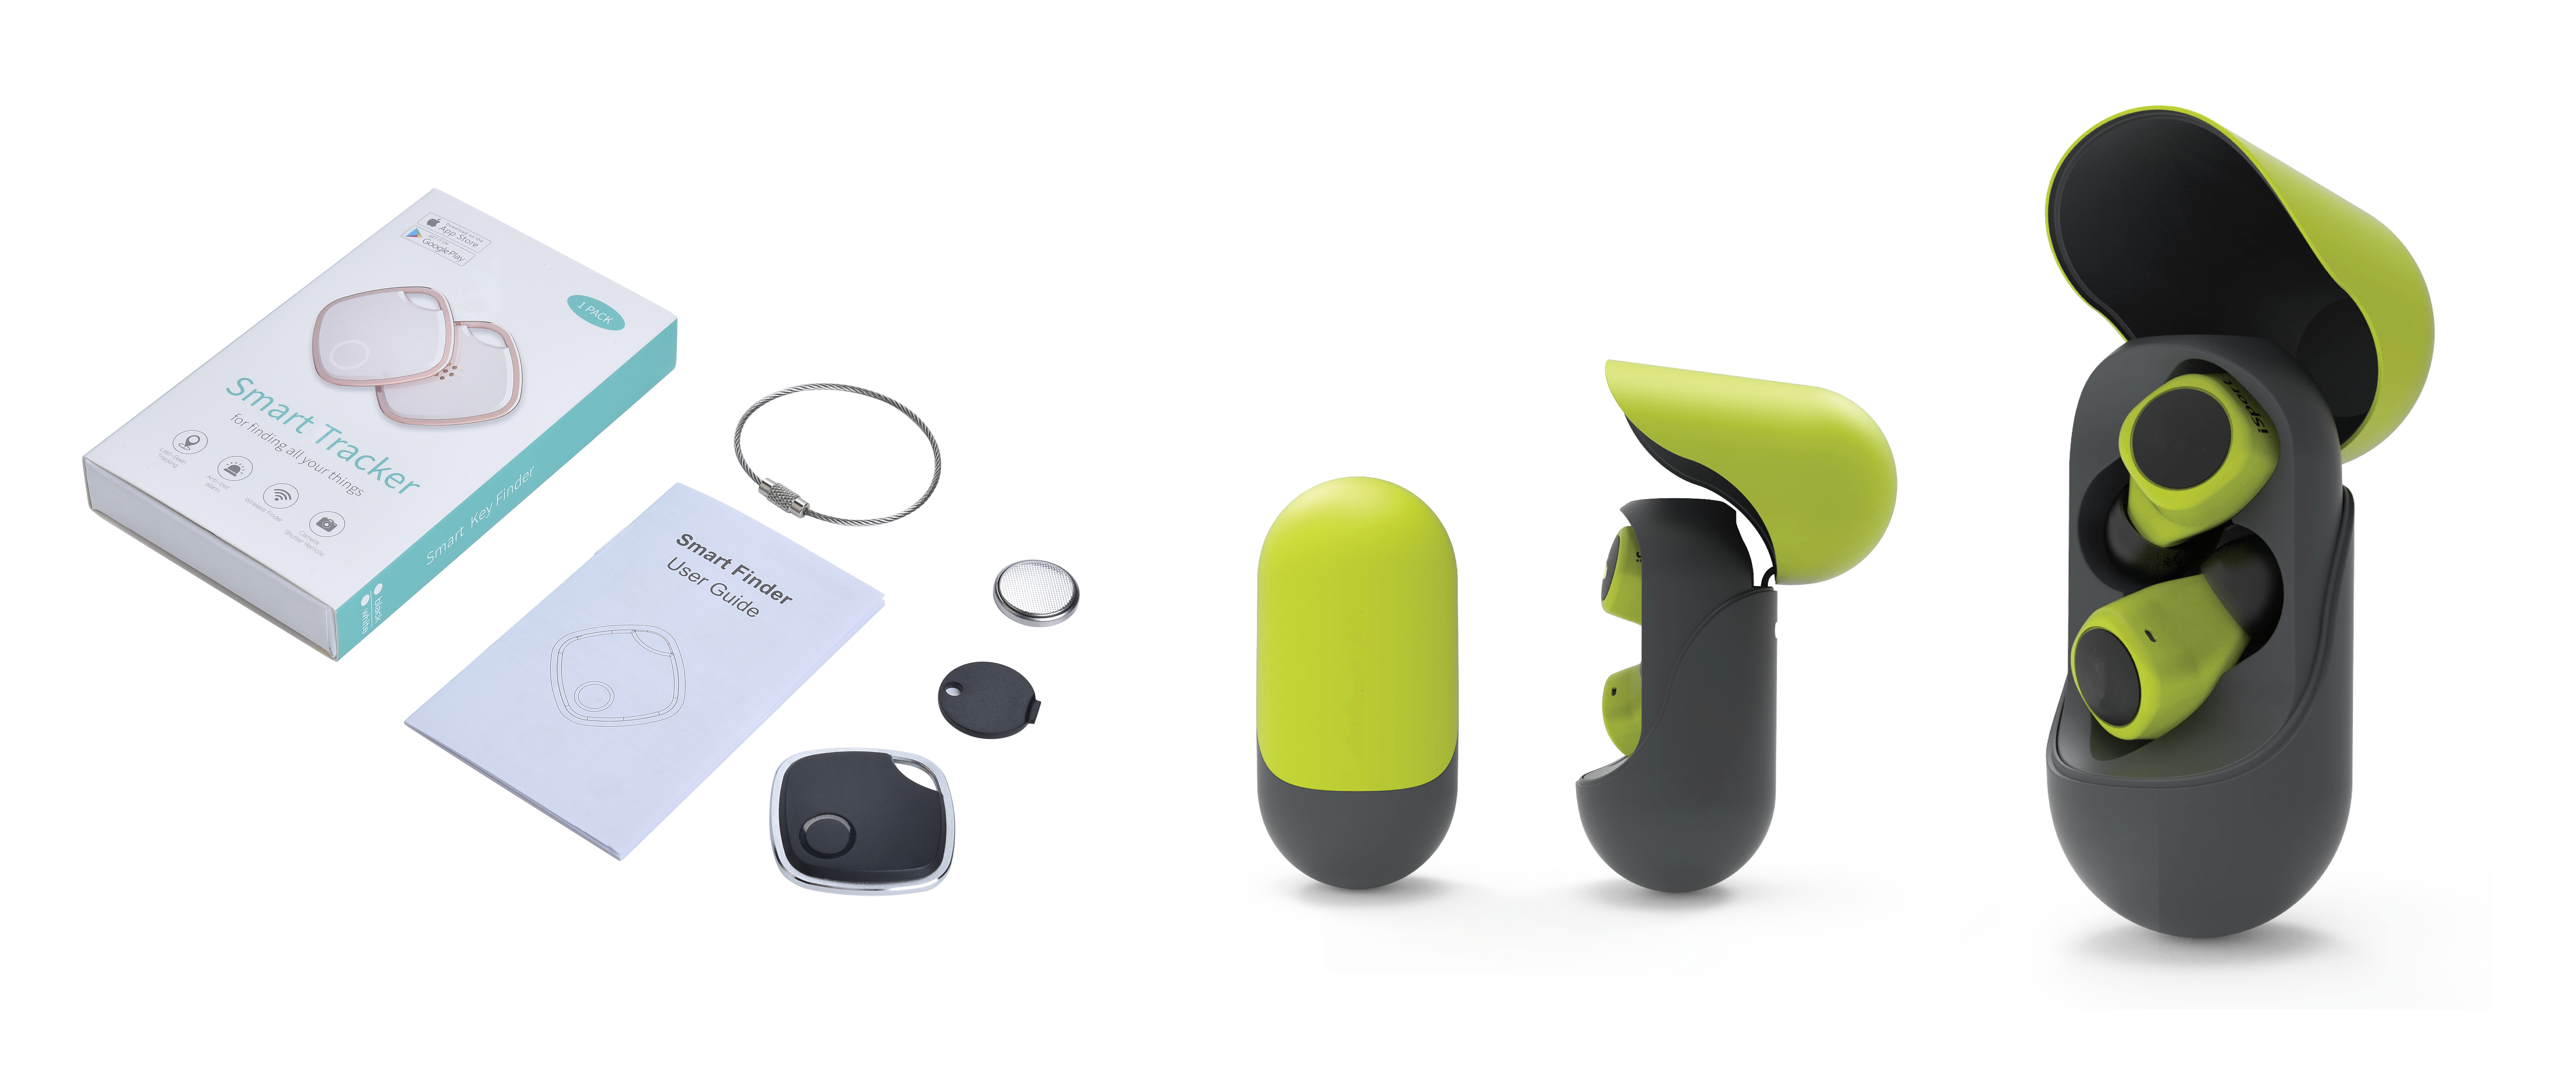 【Left: Bluetooth Anti-lost Finder,Right: TWS Bluetooth Earbuds】